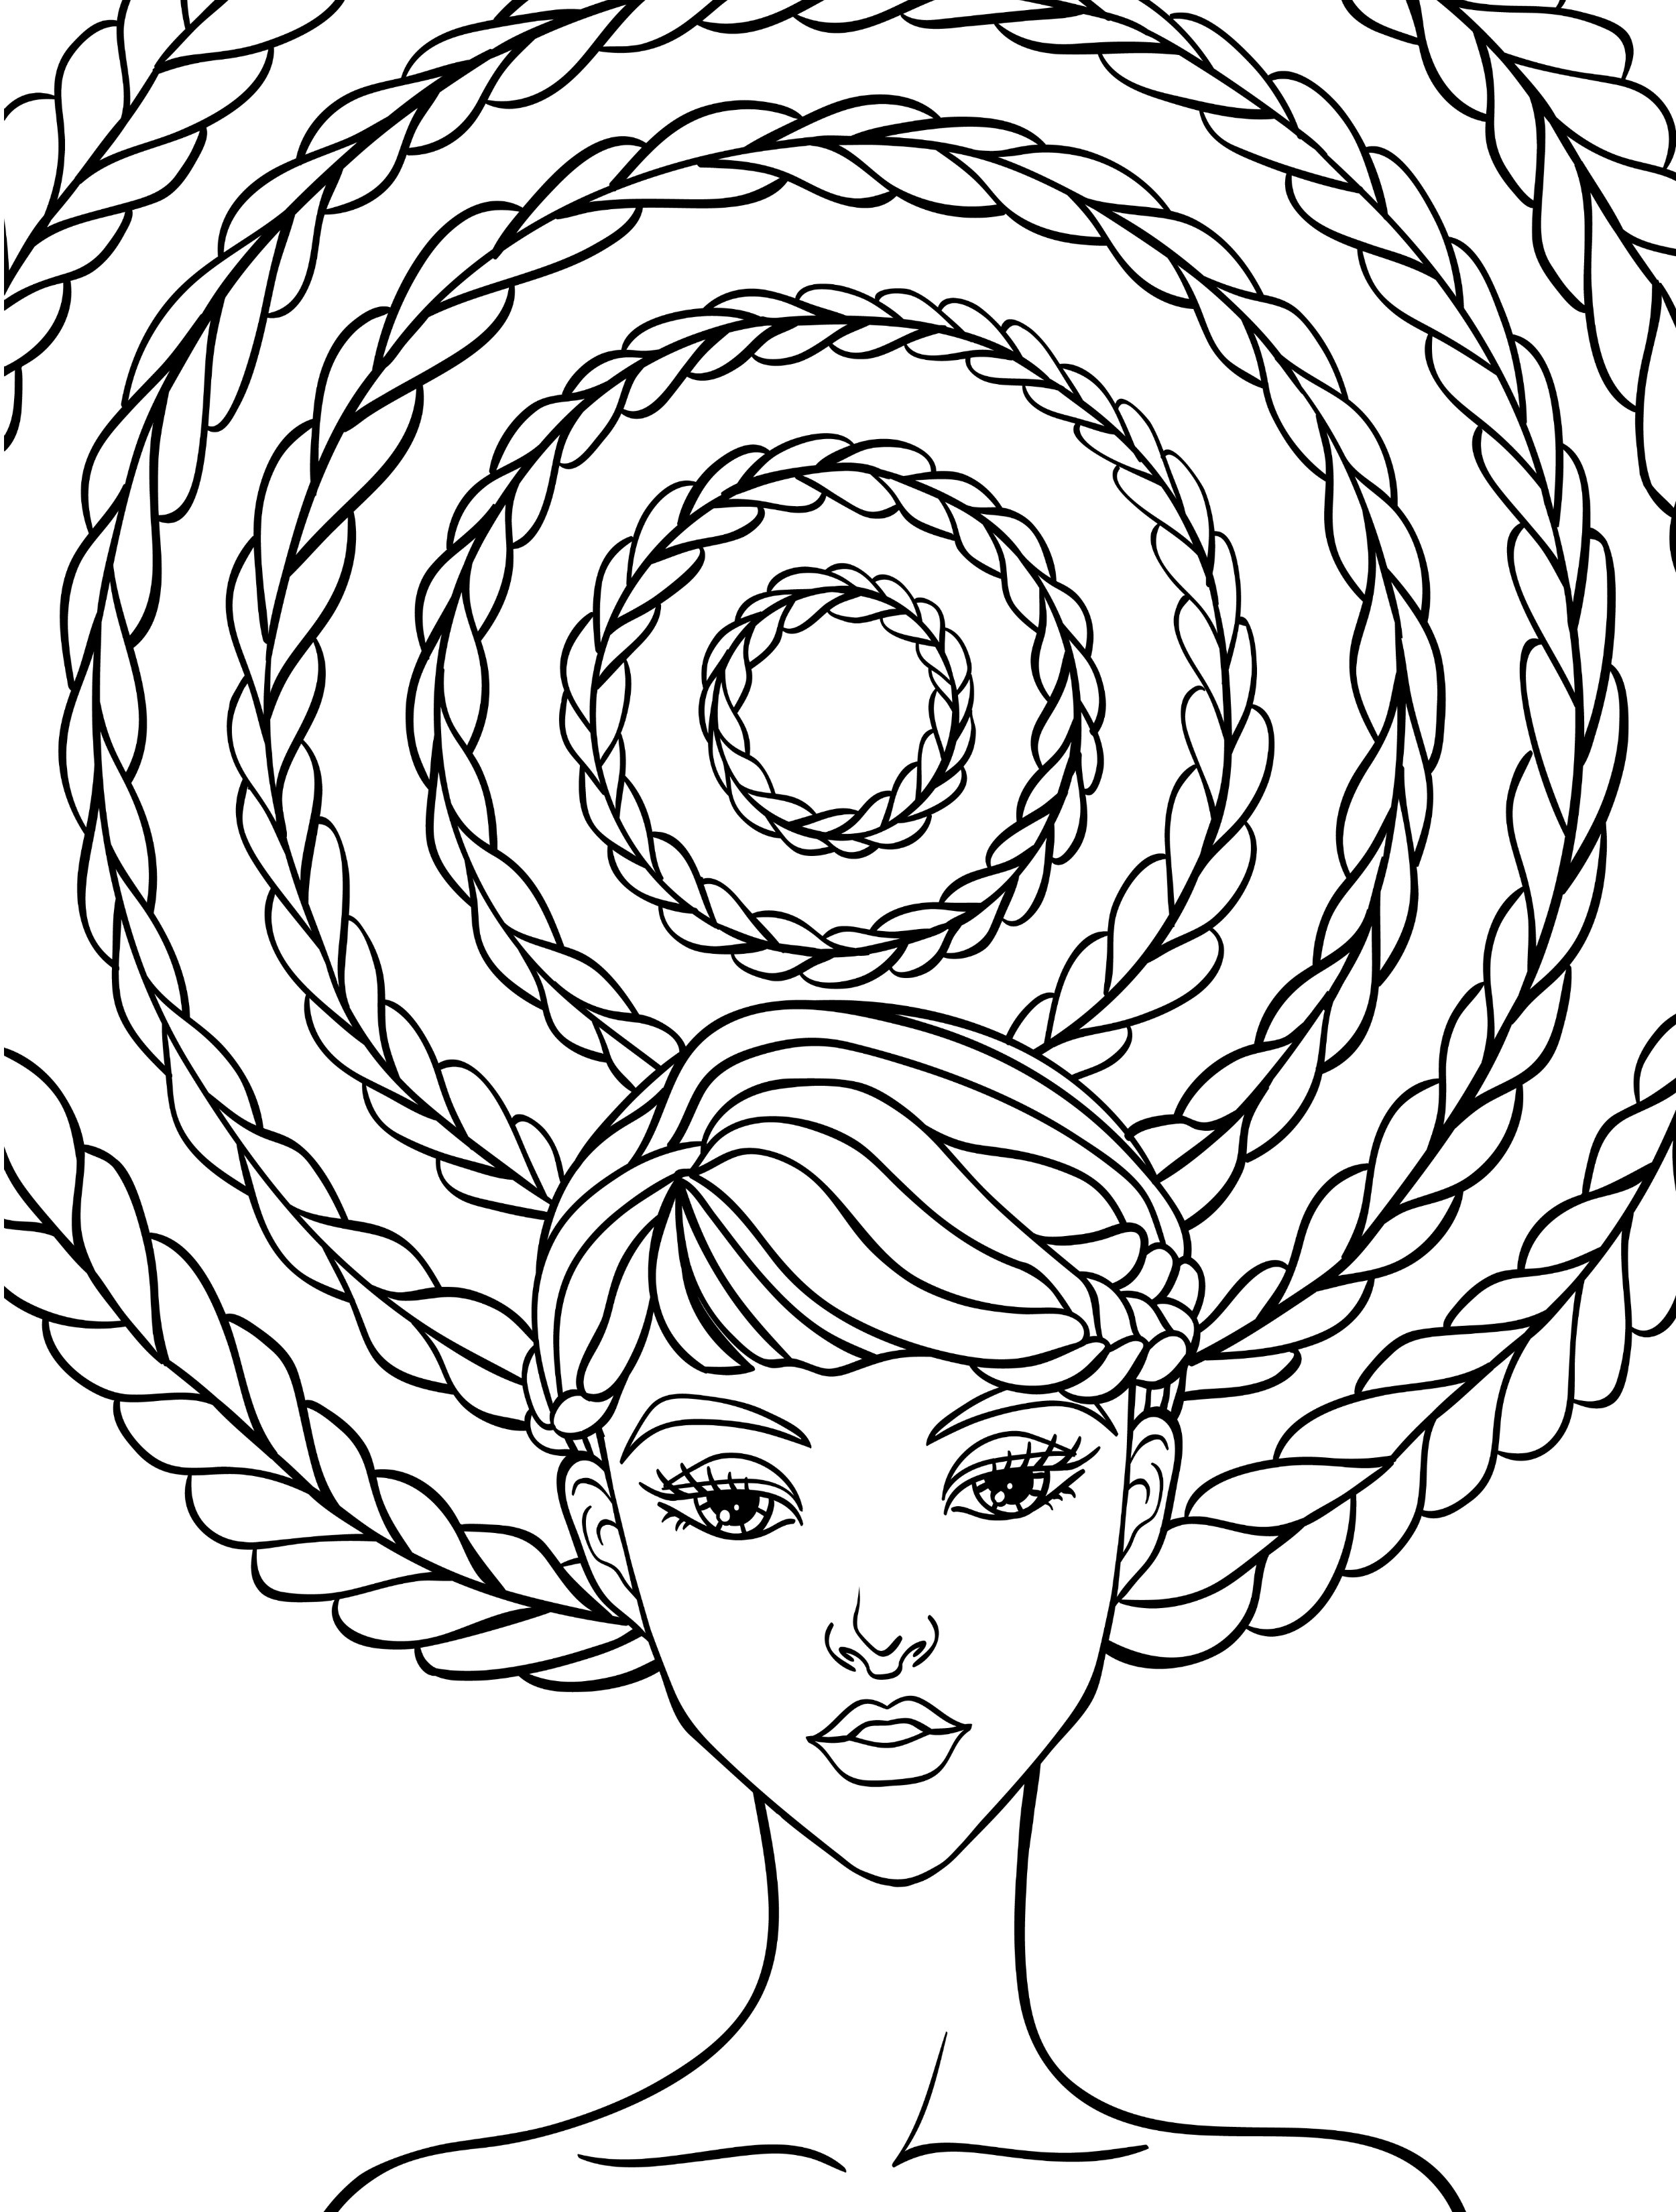 2500x3300 Coloring Pages Hair Of Crazy Fresh Girl Brushing Her Within